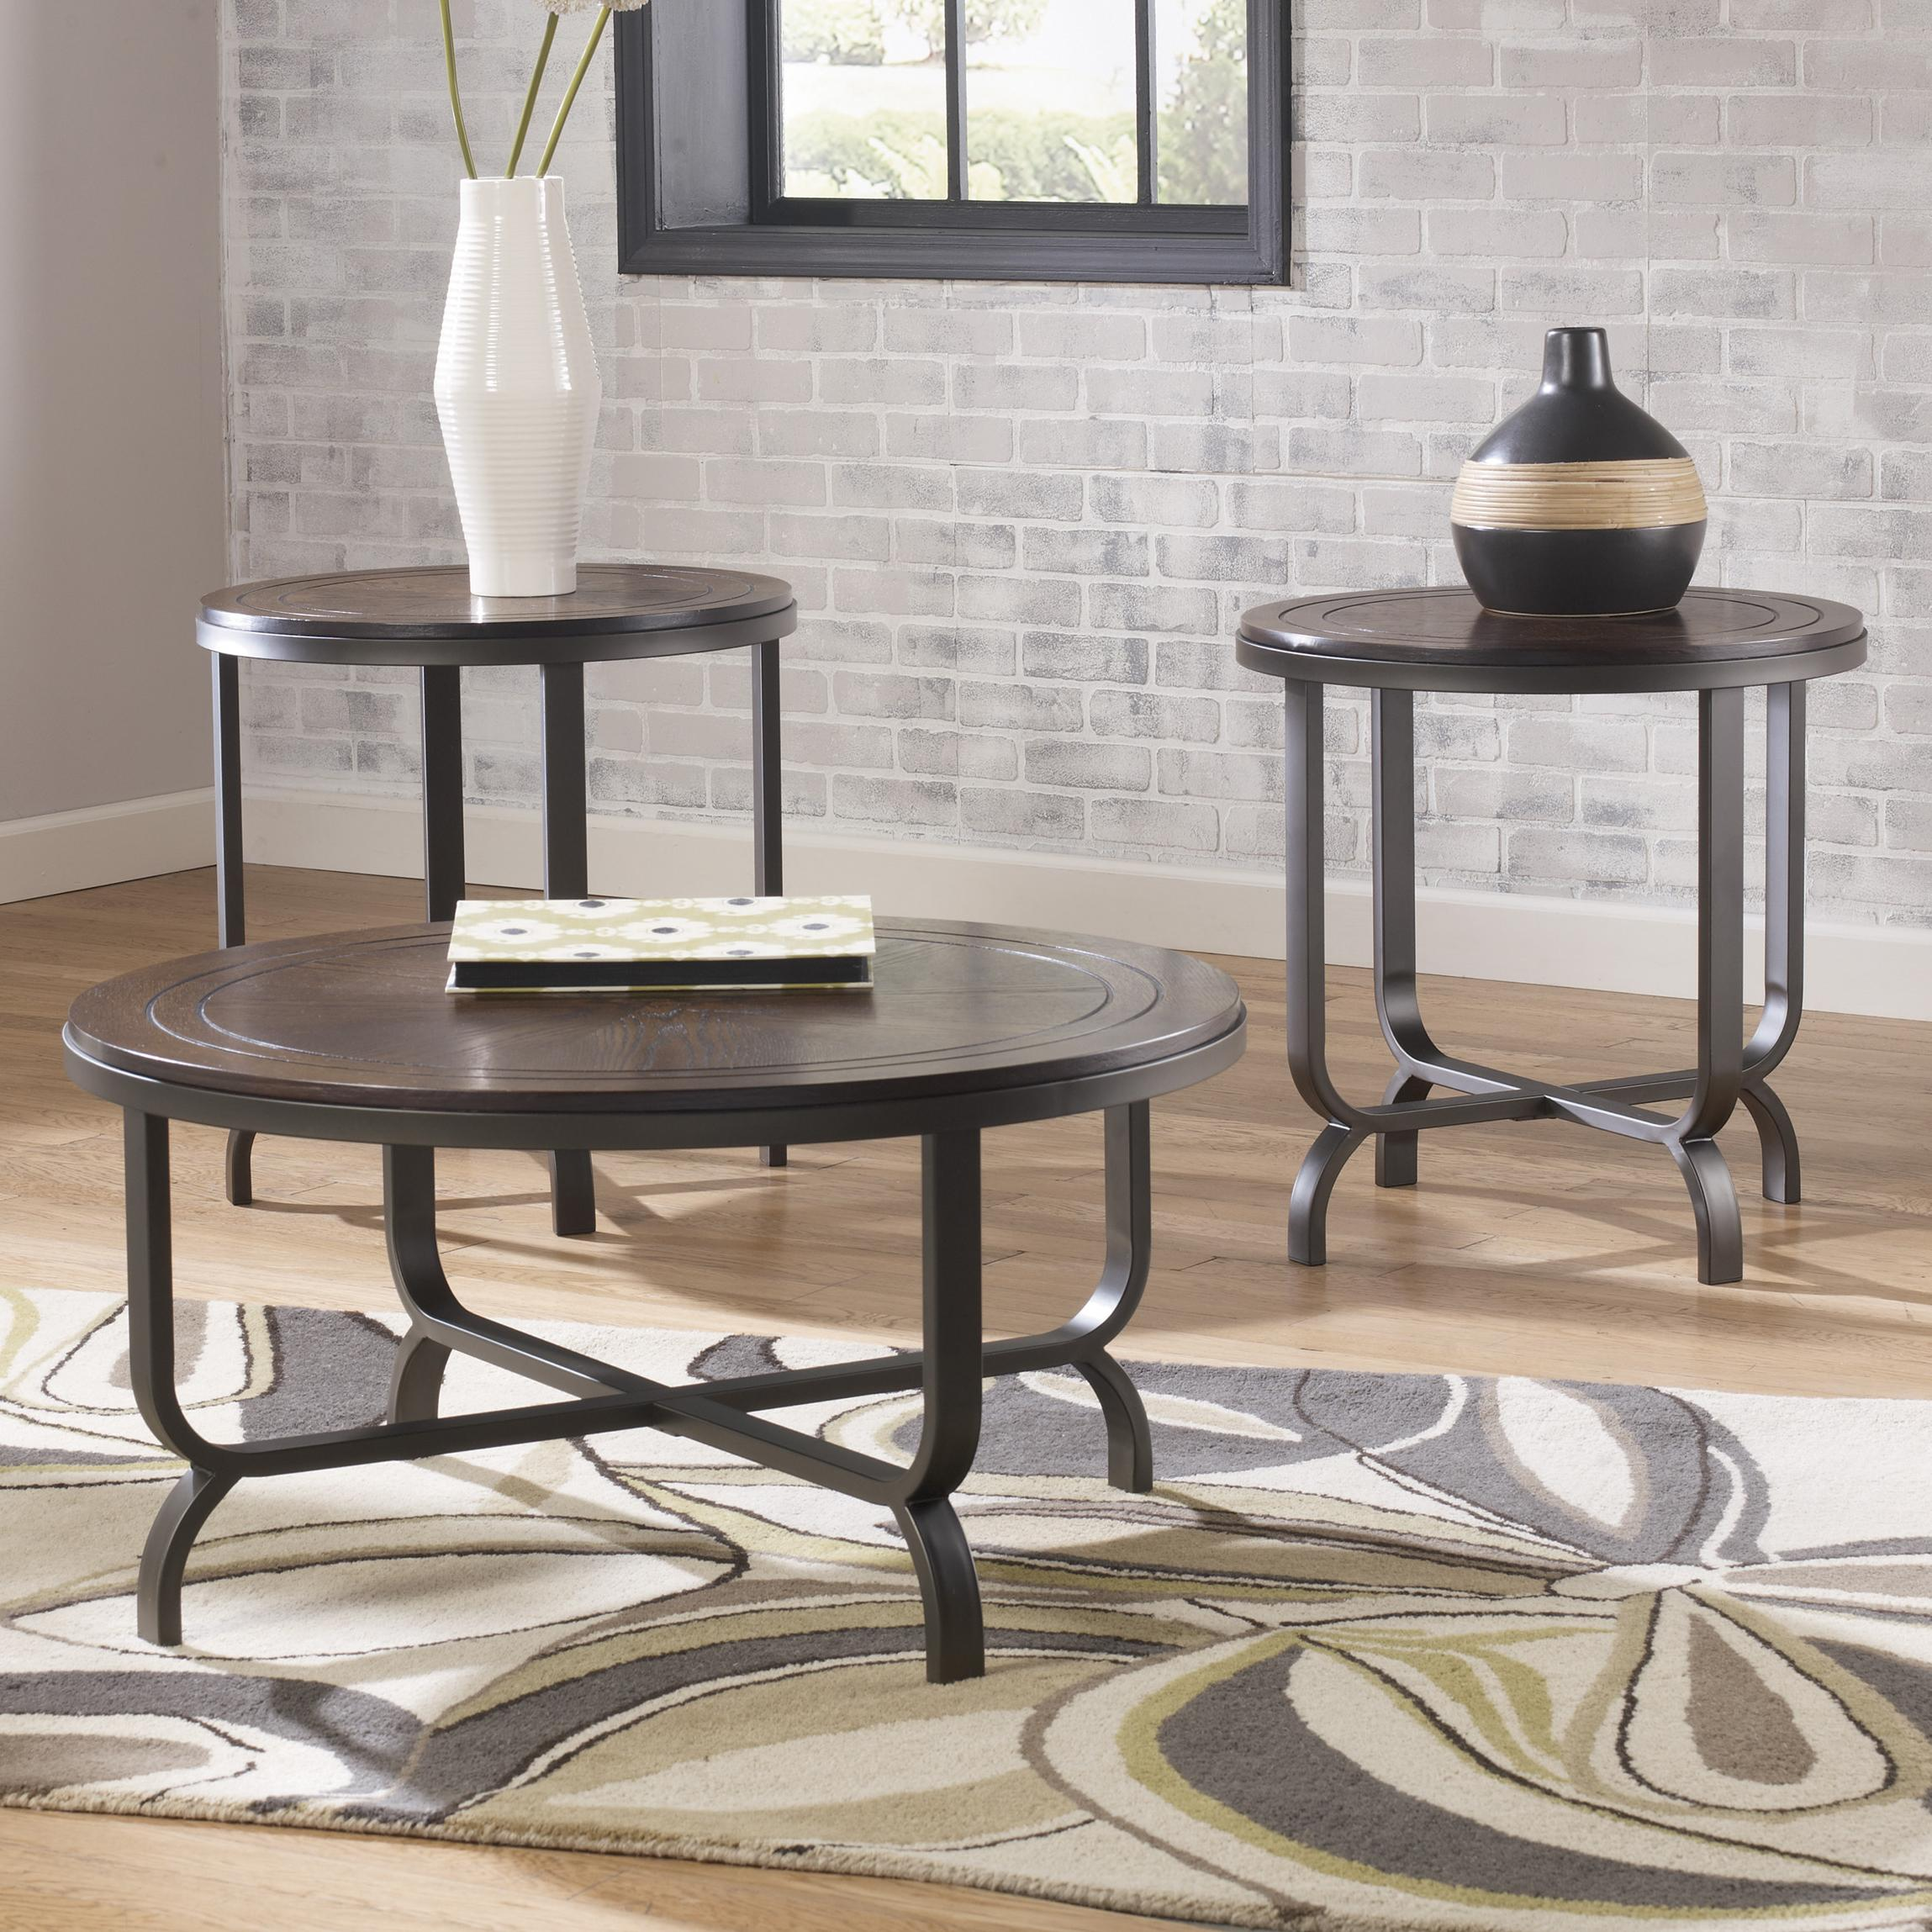 Styleline wheeler t238 13 wood steel round top occasional table set efo furniture outlet for Ashley wilkes bedroom collection